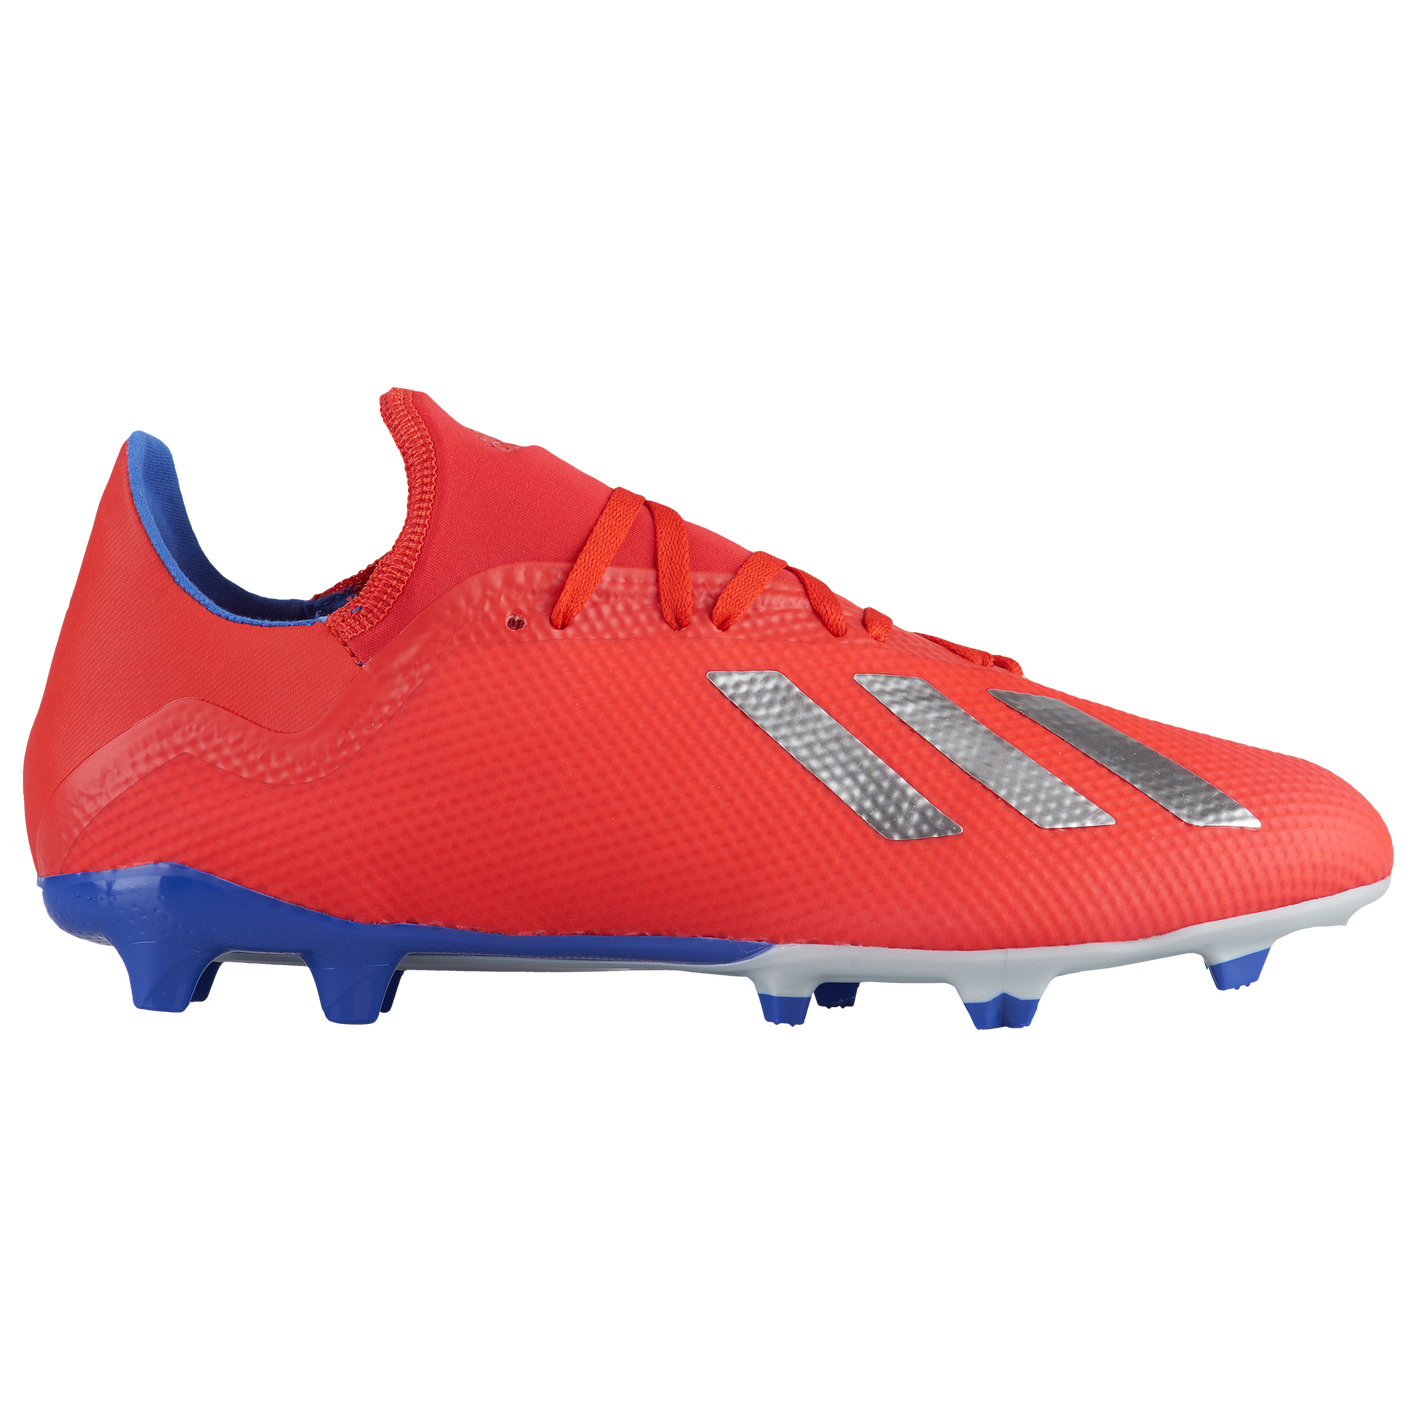 2c3b757724828 adidas X 18.3 FG - Men s - Soccer - Shoes - Active Red Silver ...